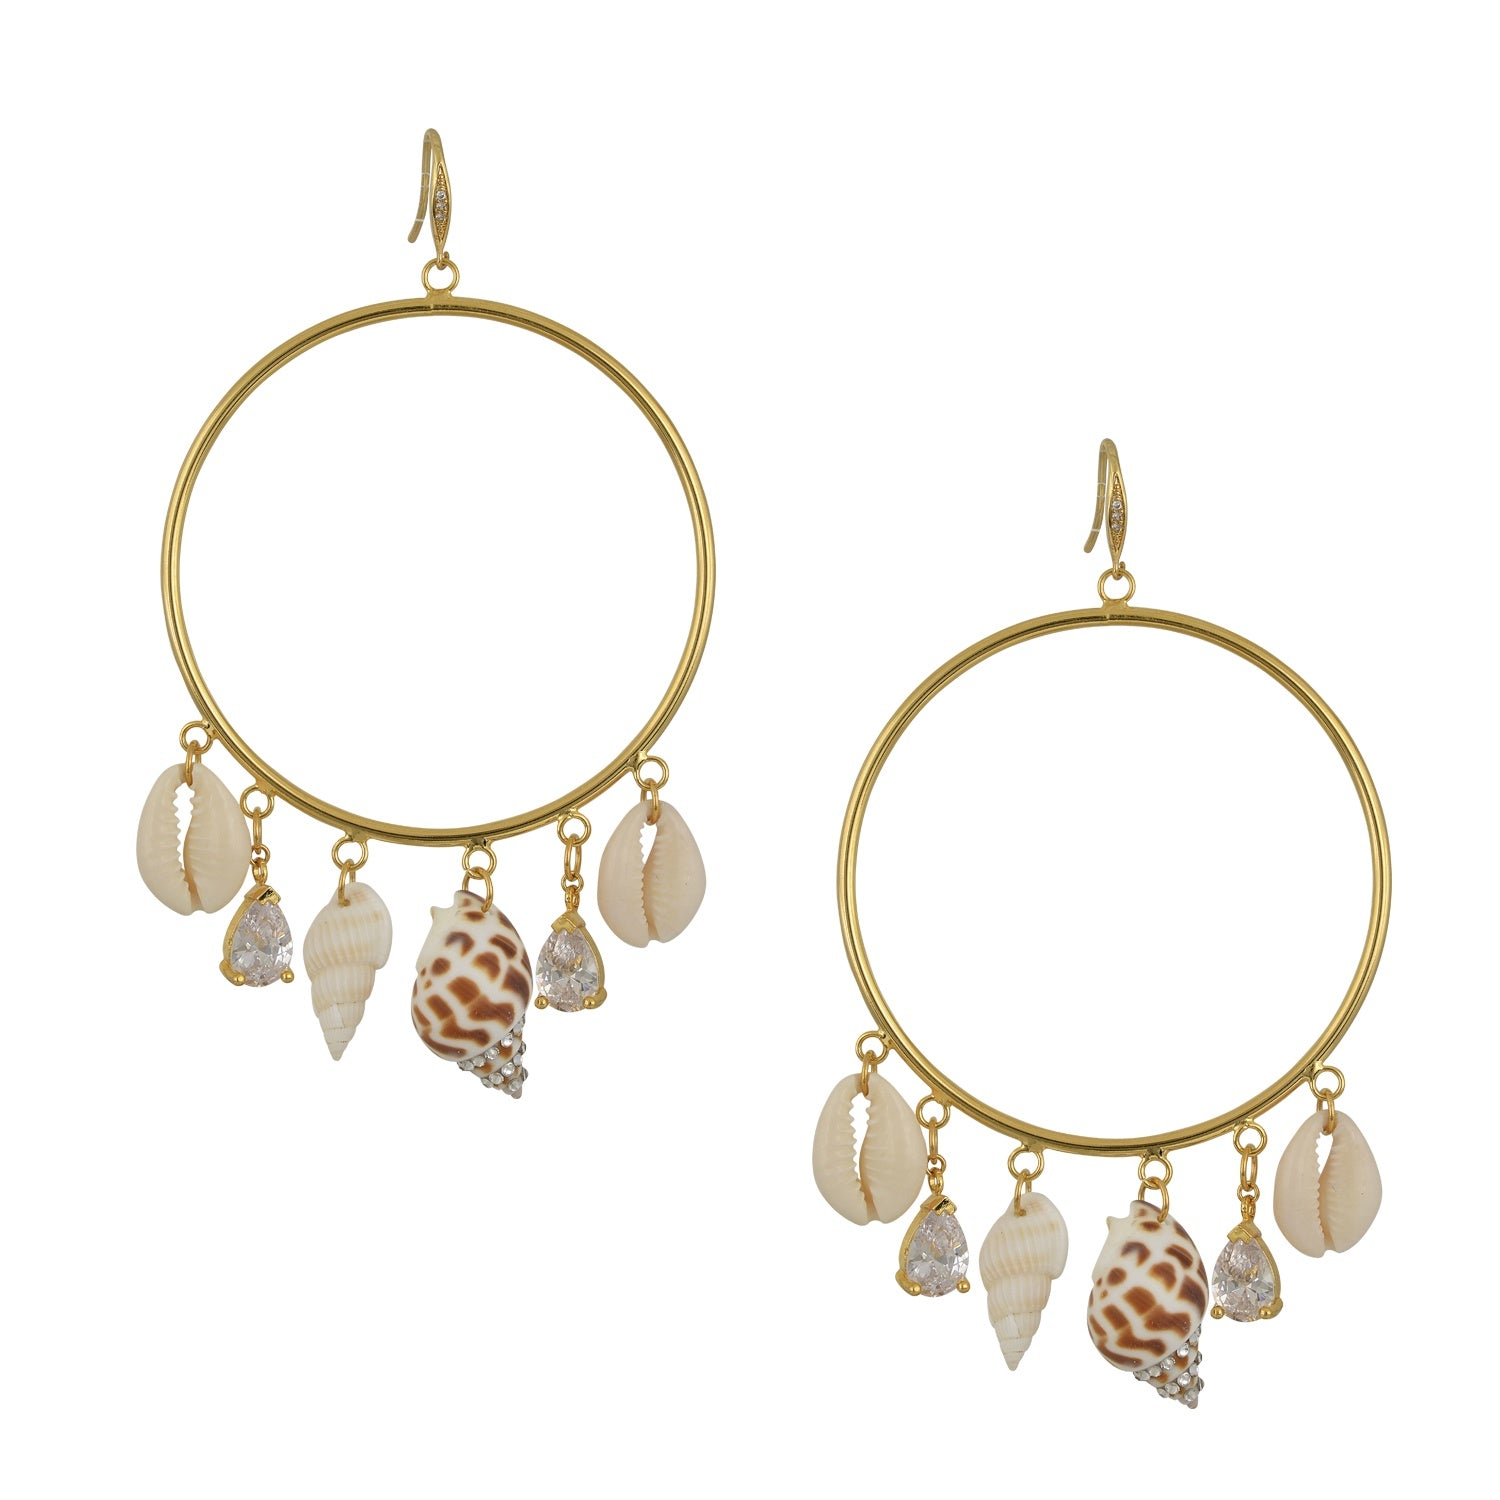 Mayol Malibu Earrings